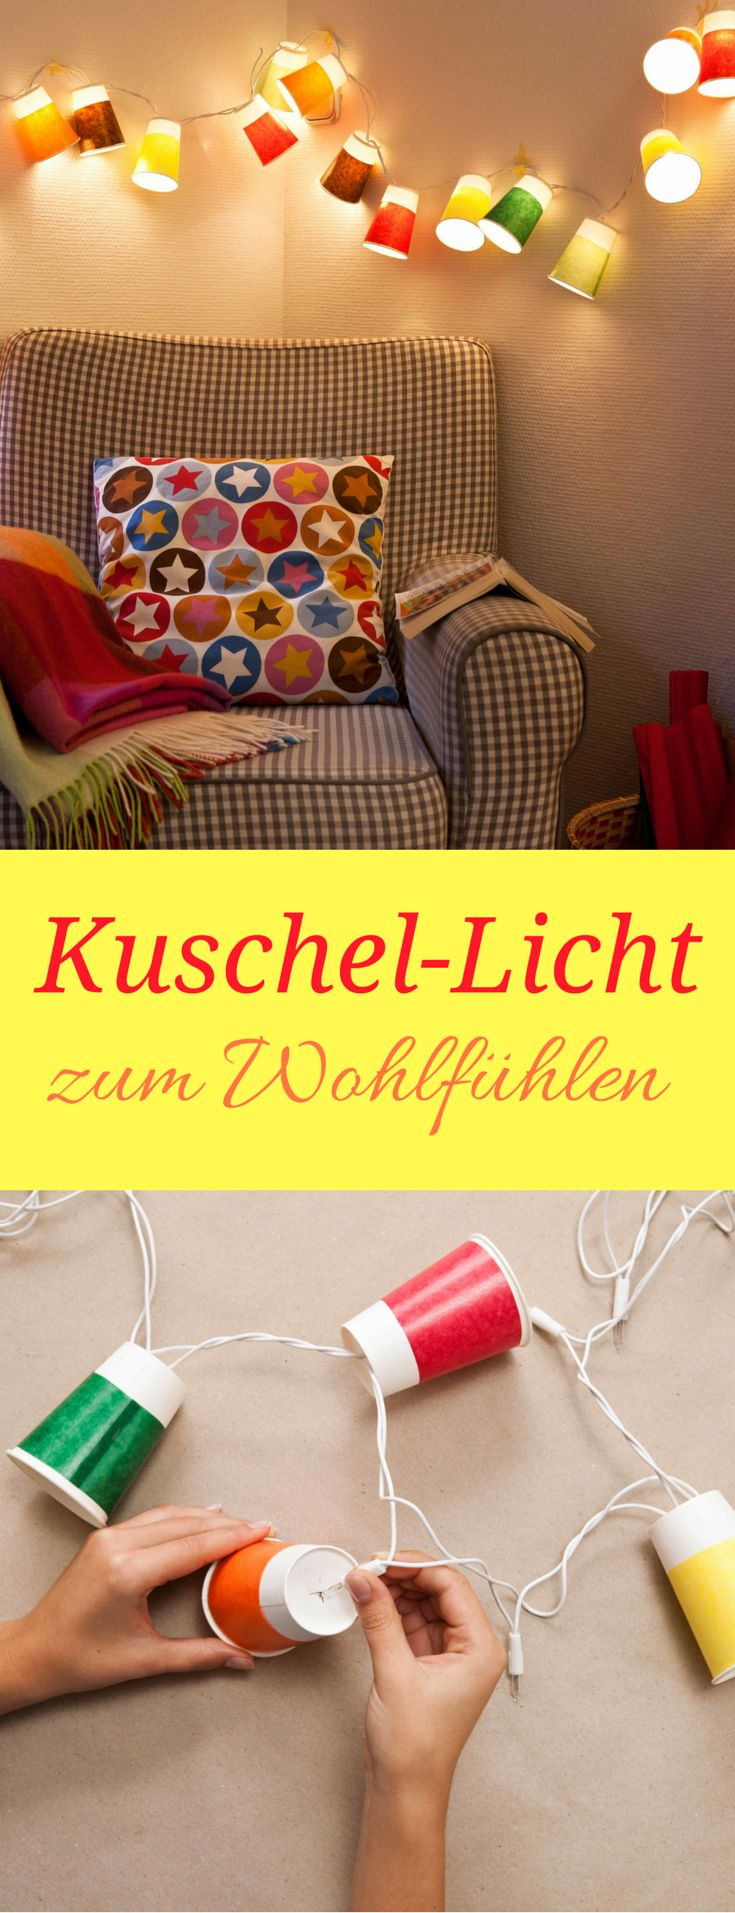 die besten 25 lichterkette basteln ideen auf pinterest diy girlande lichter lichterkette und. Black Bedroom Furniture Sets. Home Design Ideas